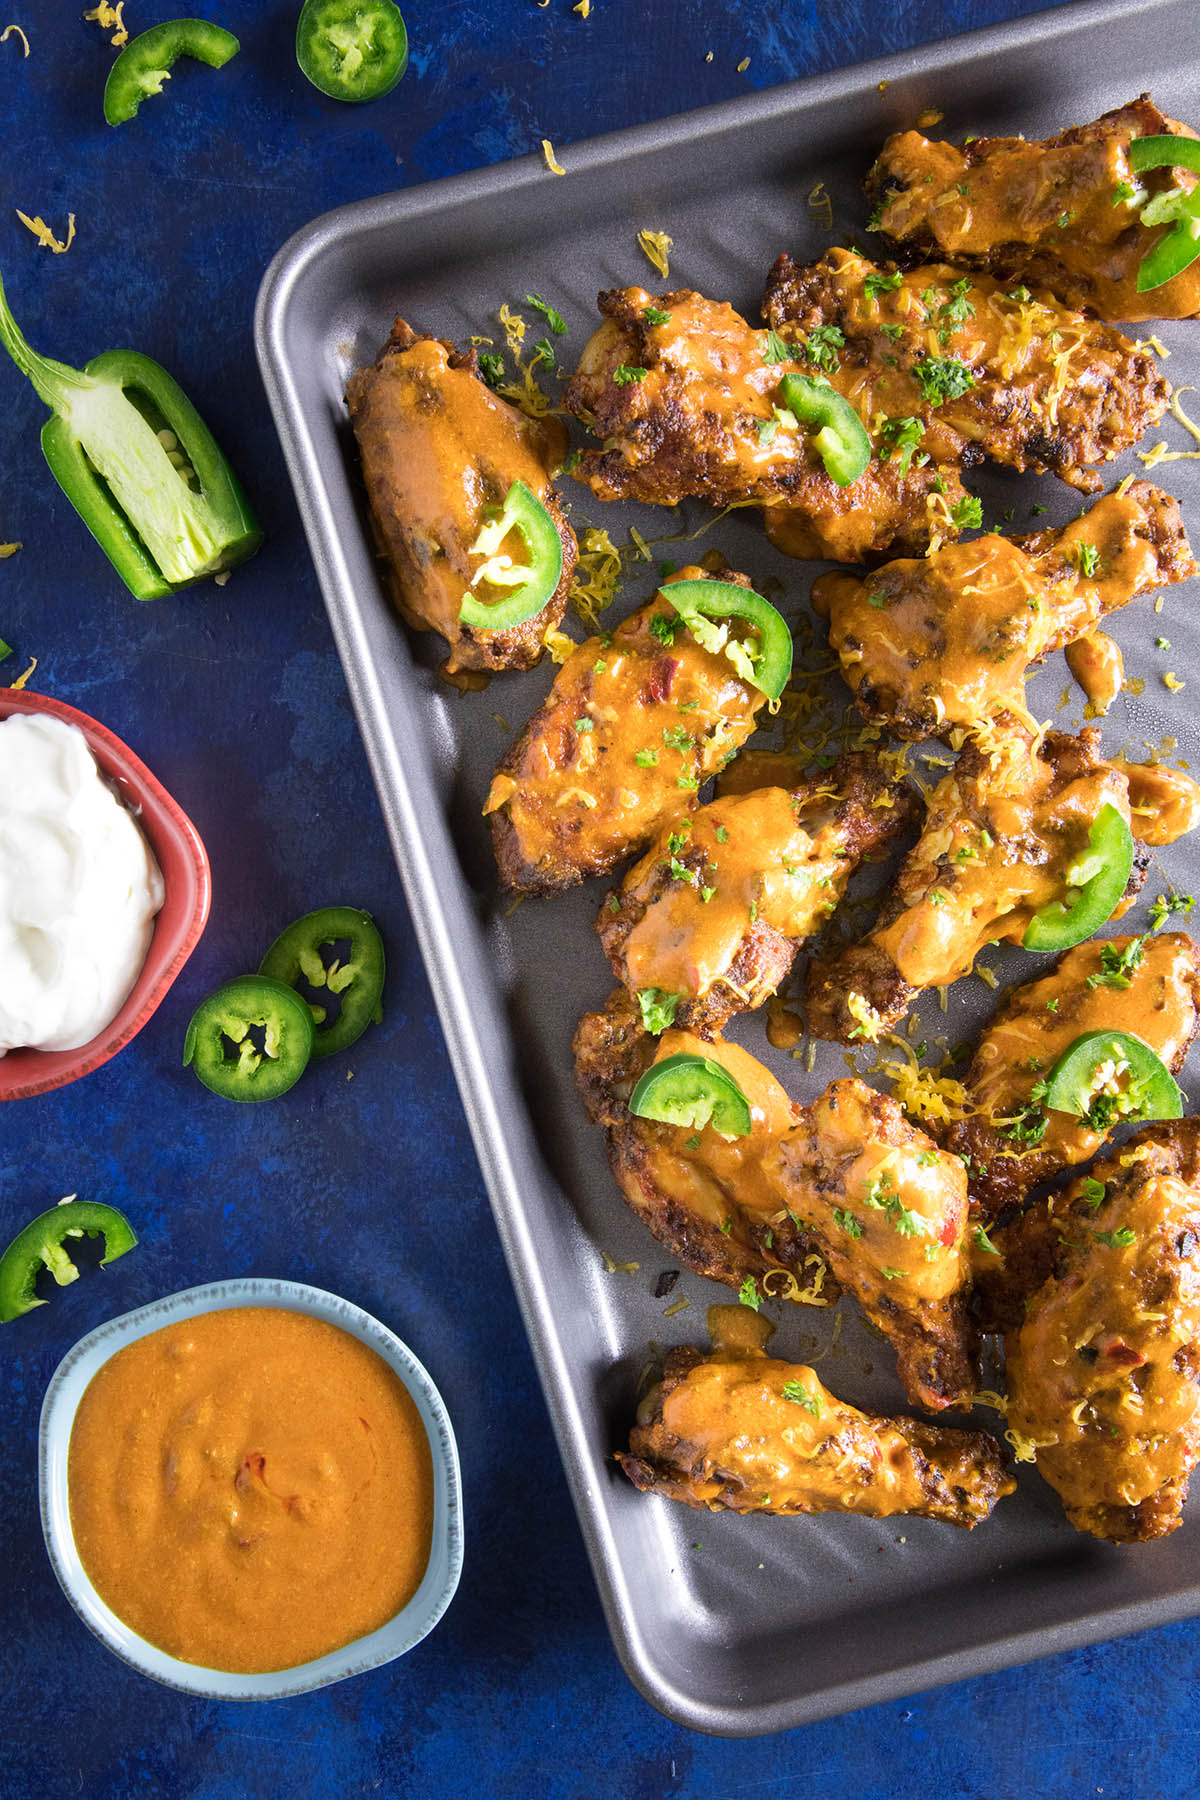 Jalapeno-Cheddar Chicken Wings